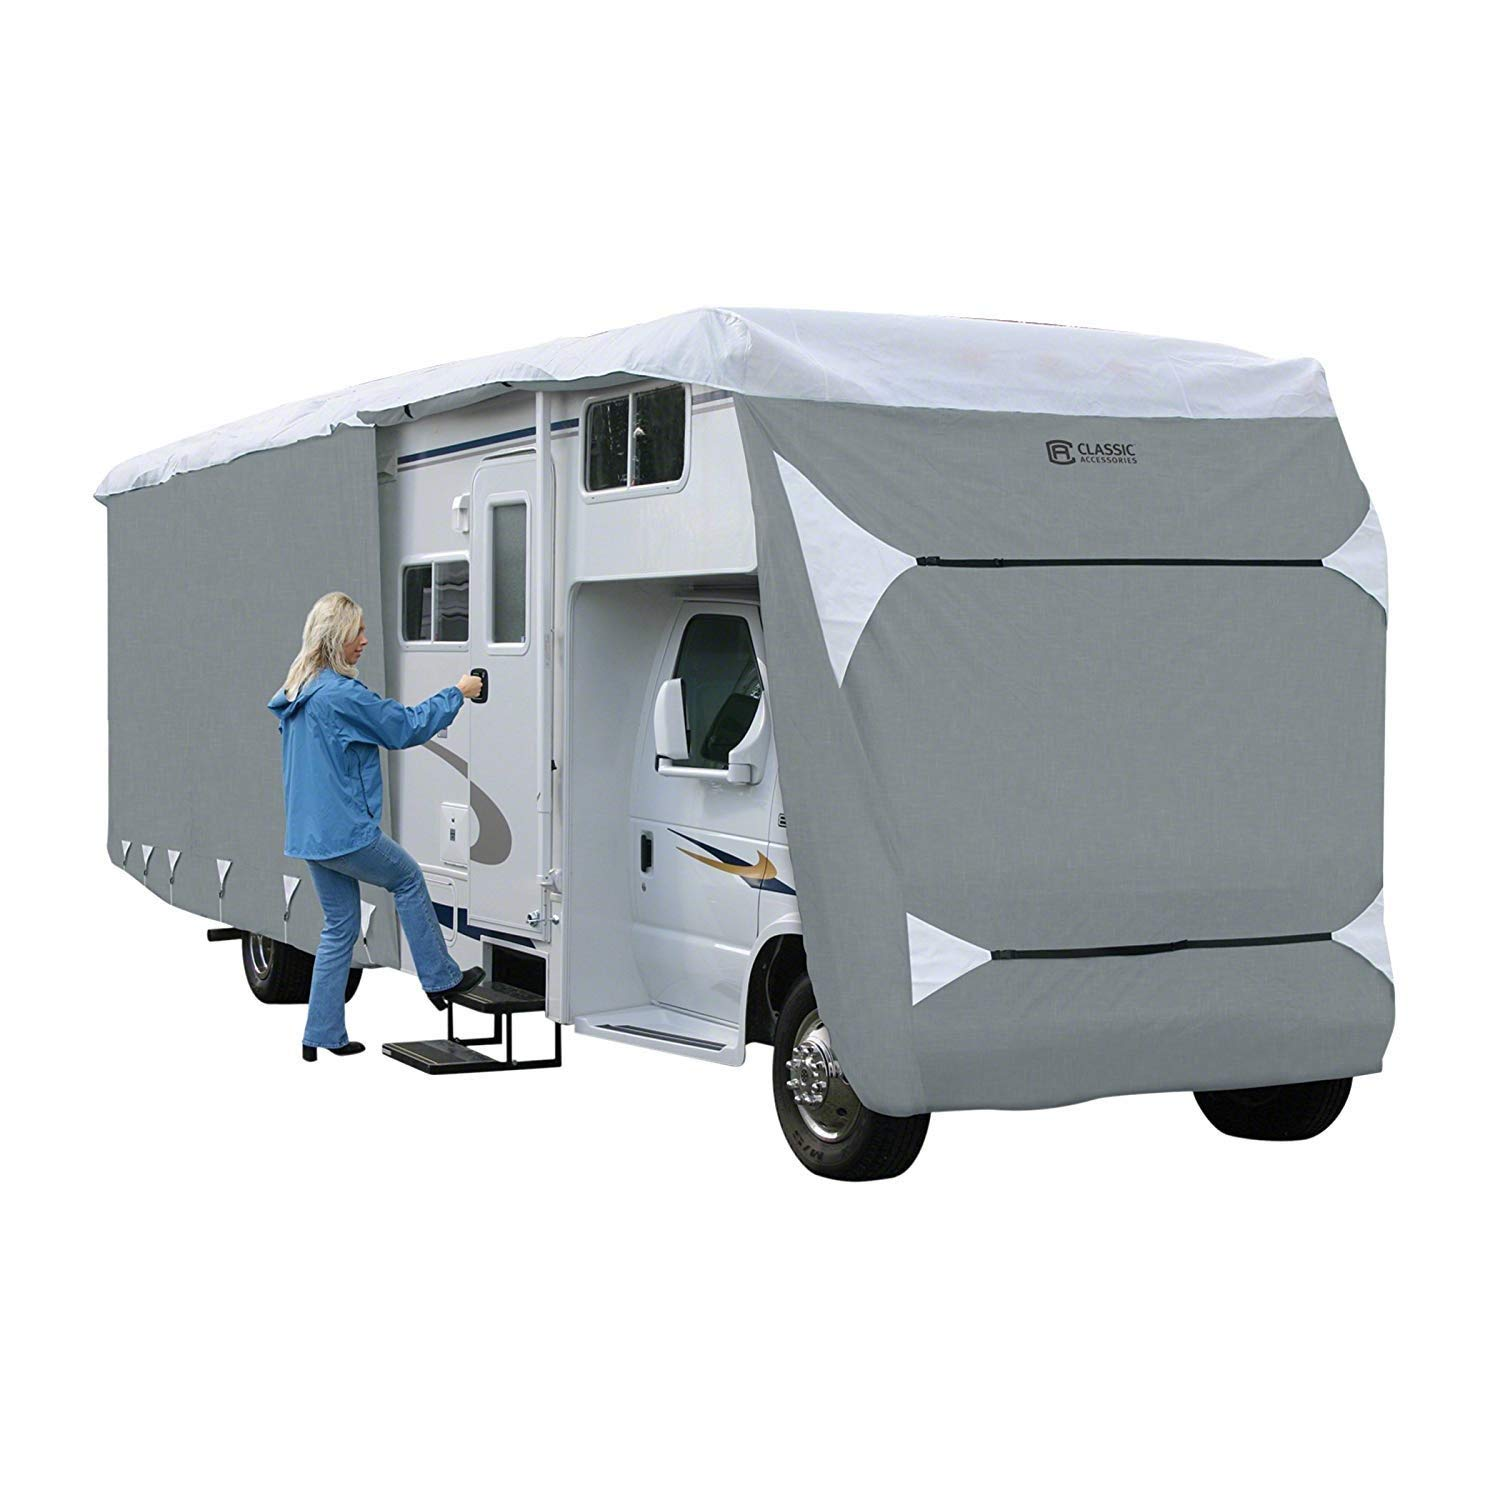 Classic Accessories OverDrive PolyPro 3 Deluxe Class C RV Cover, Fits 32' - 35' RVs by Classic Accessories